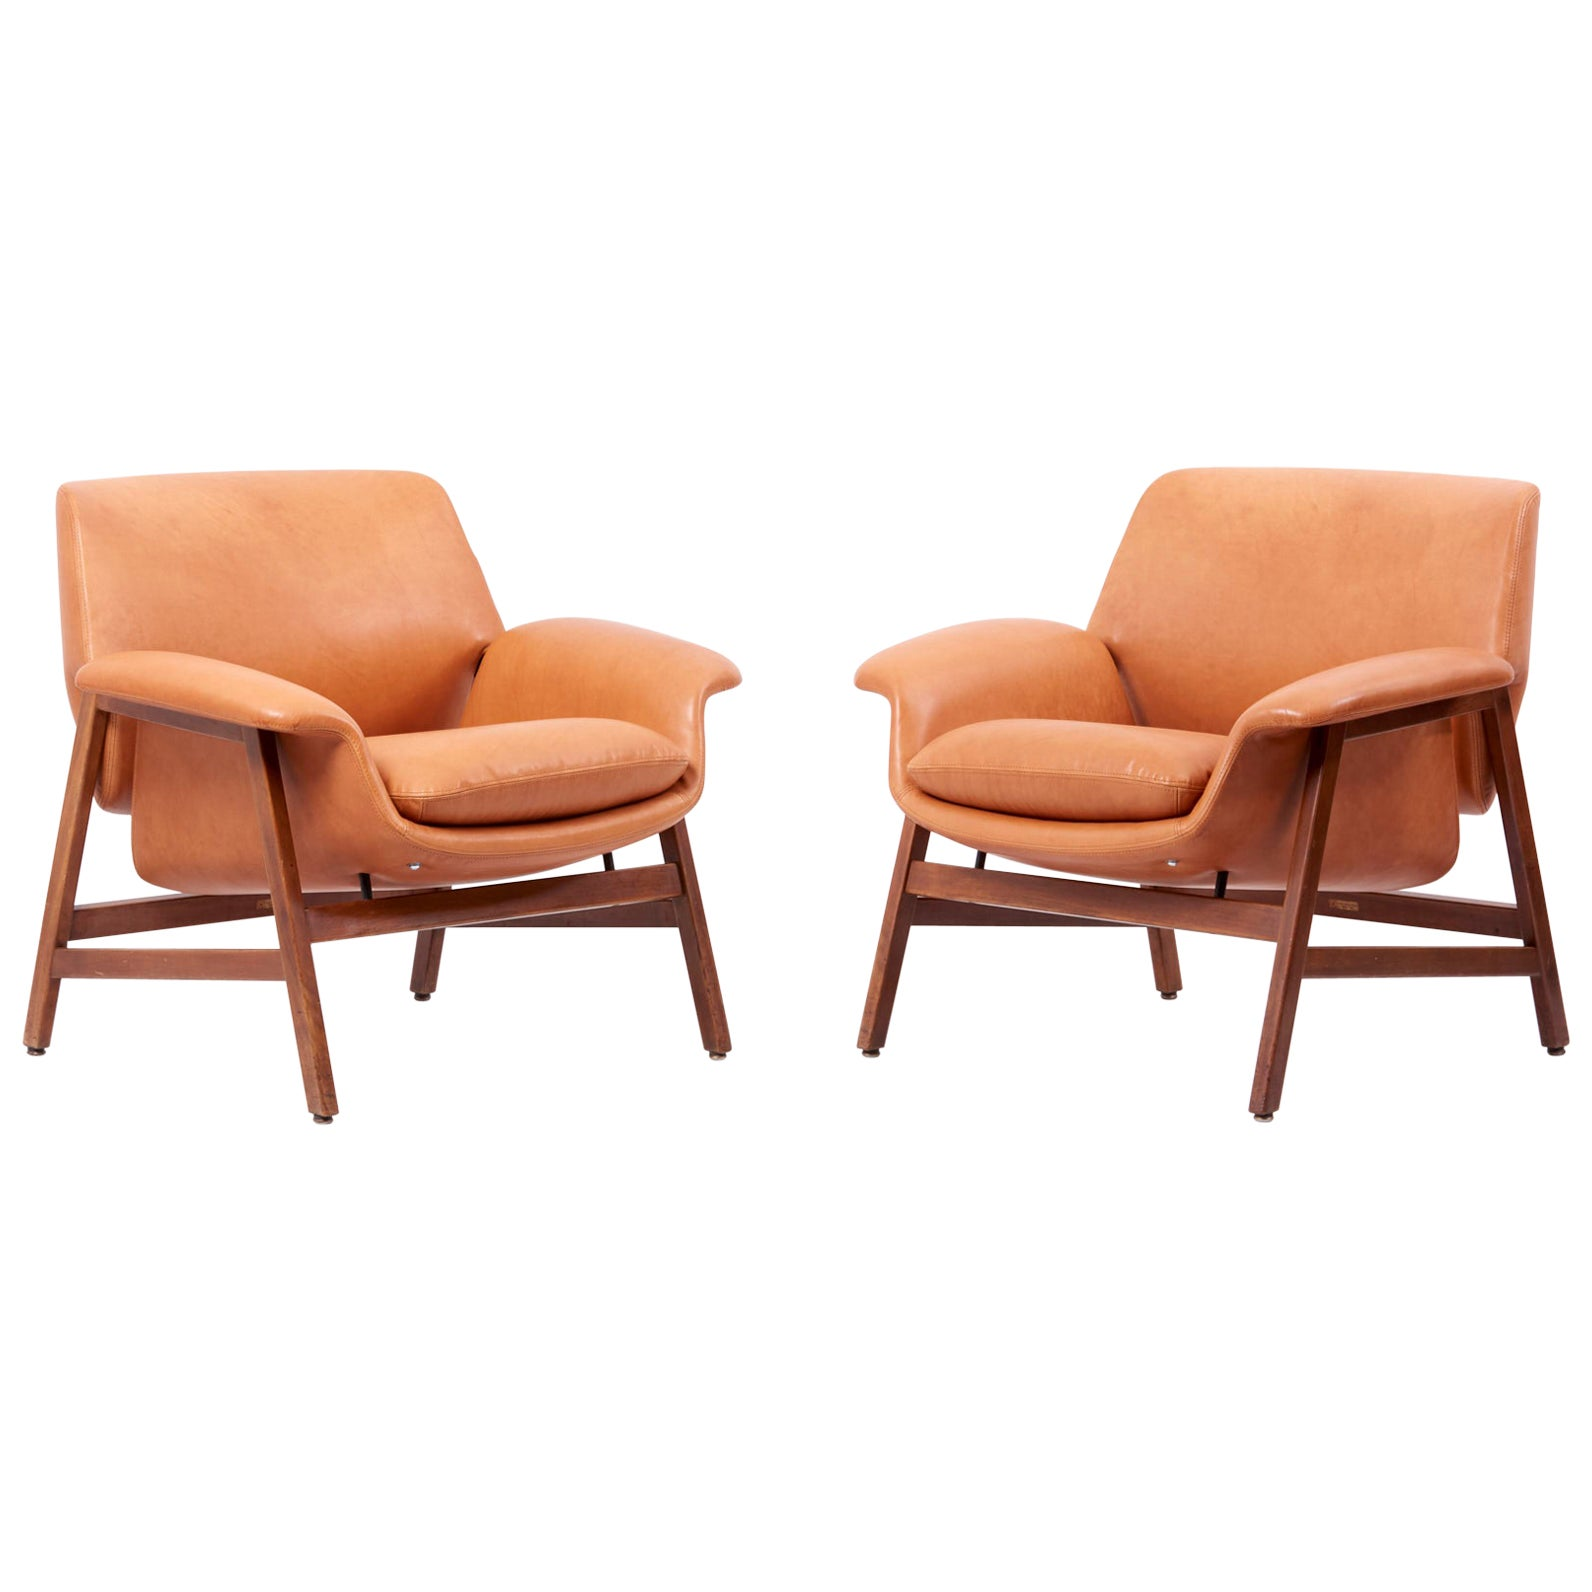 Gianfranco Frattini Lounge Chairs Model '849' for Cassina in Leather Italy 1950s